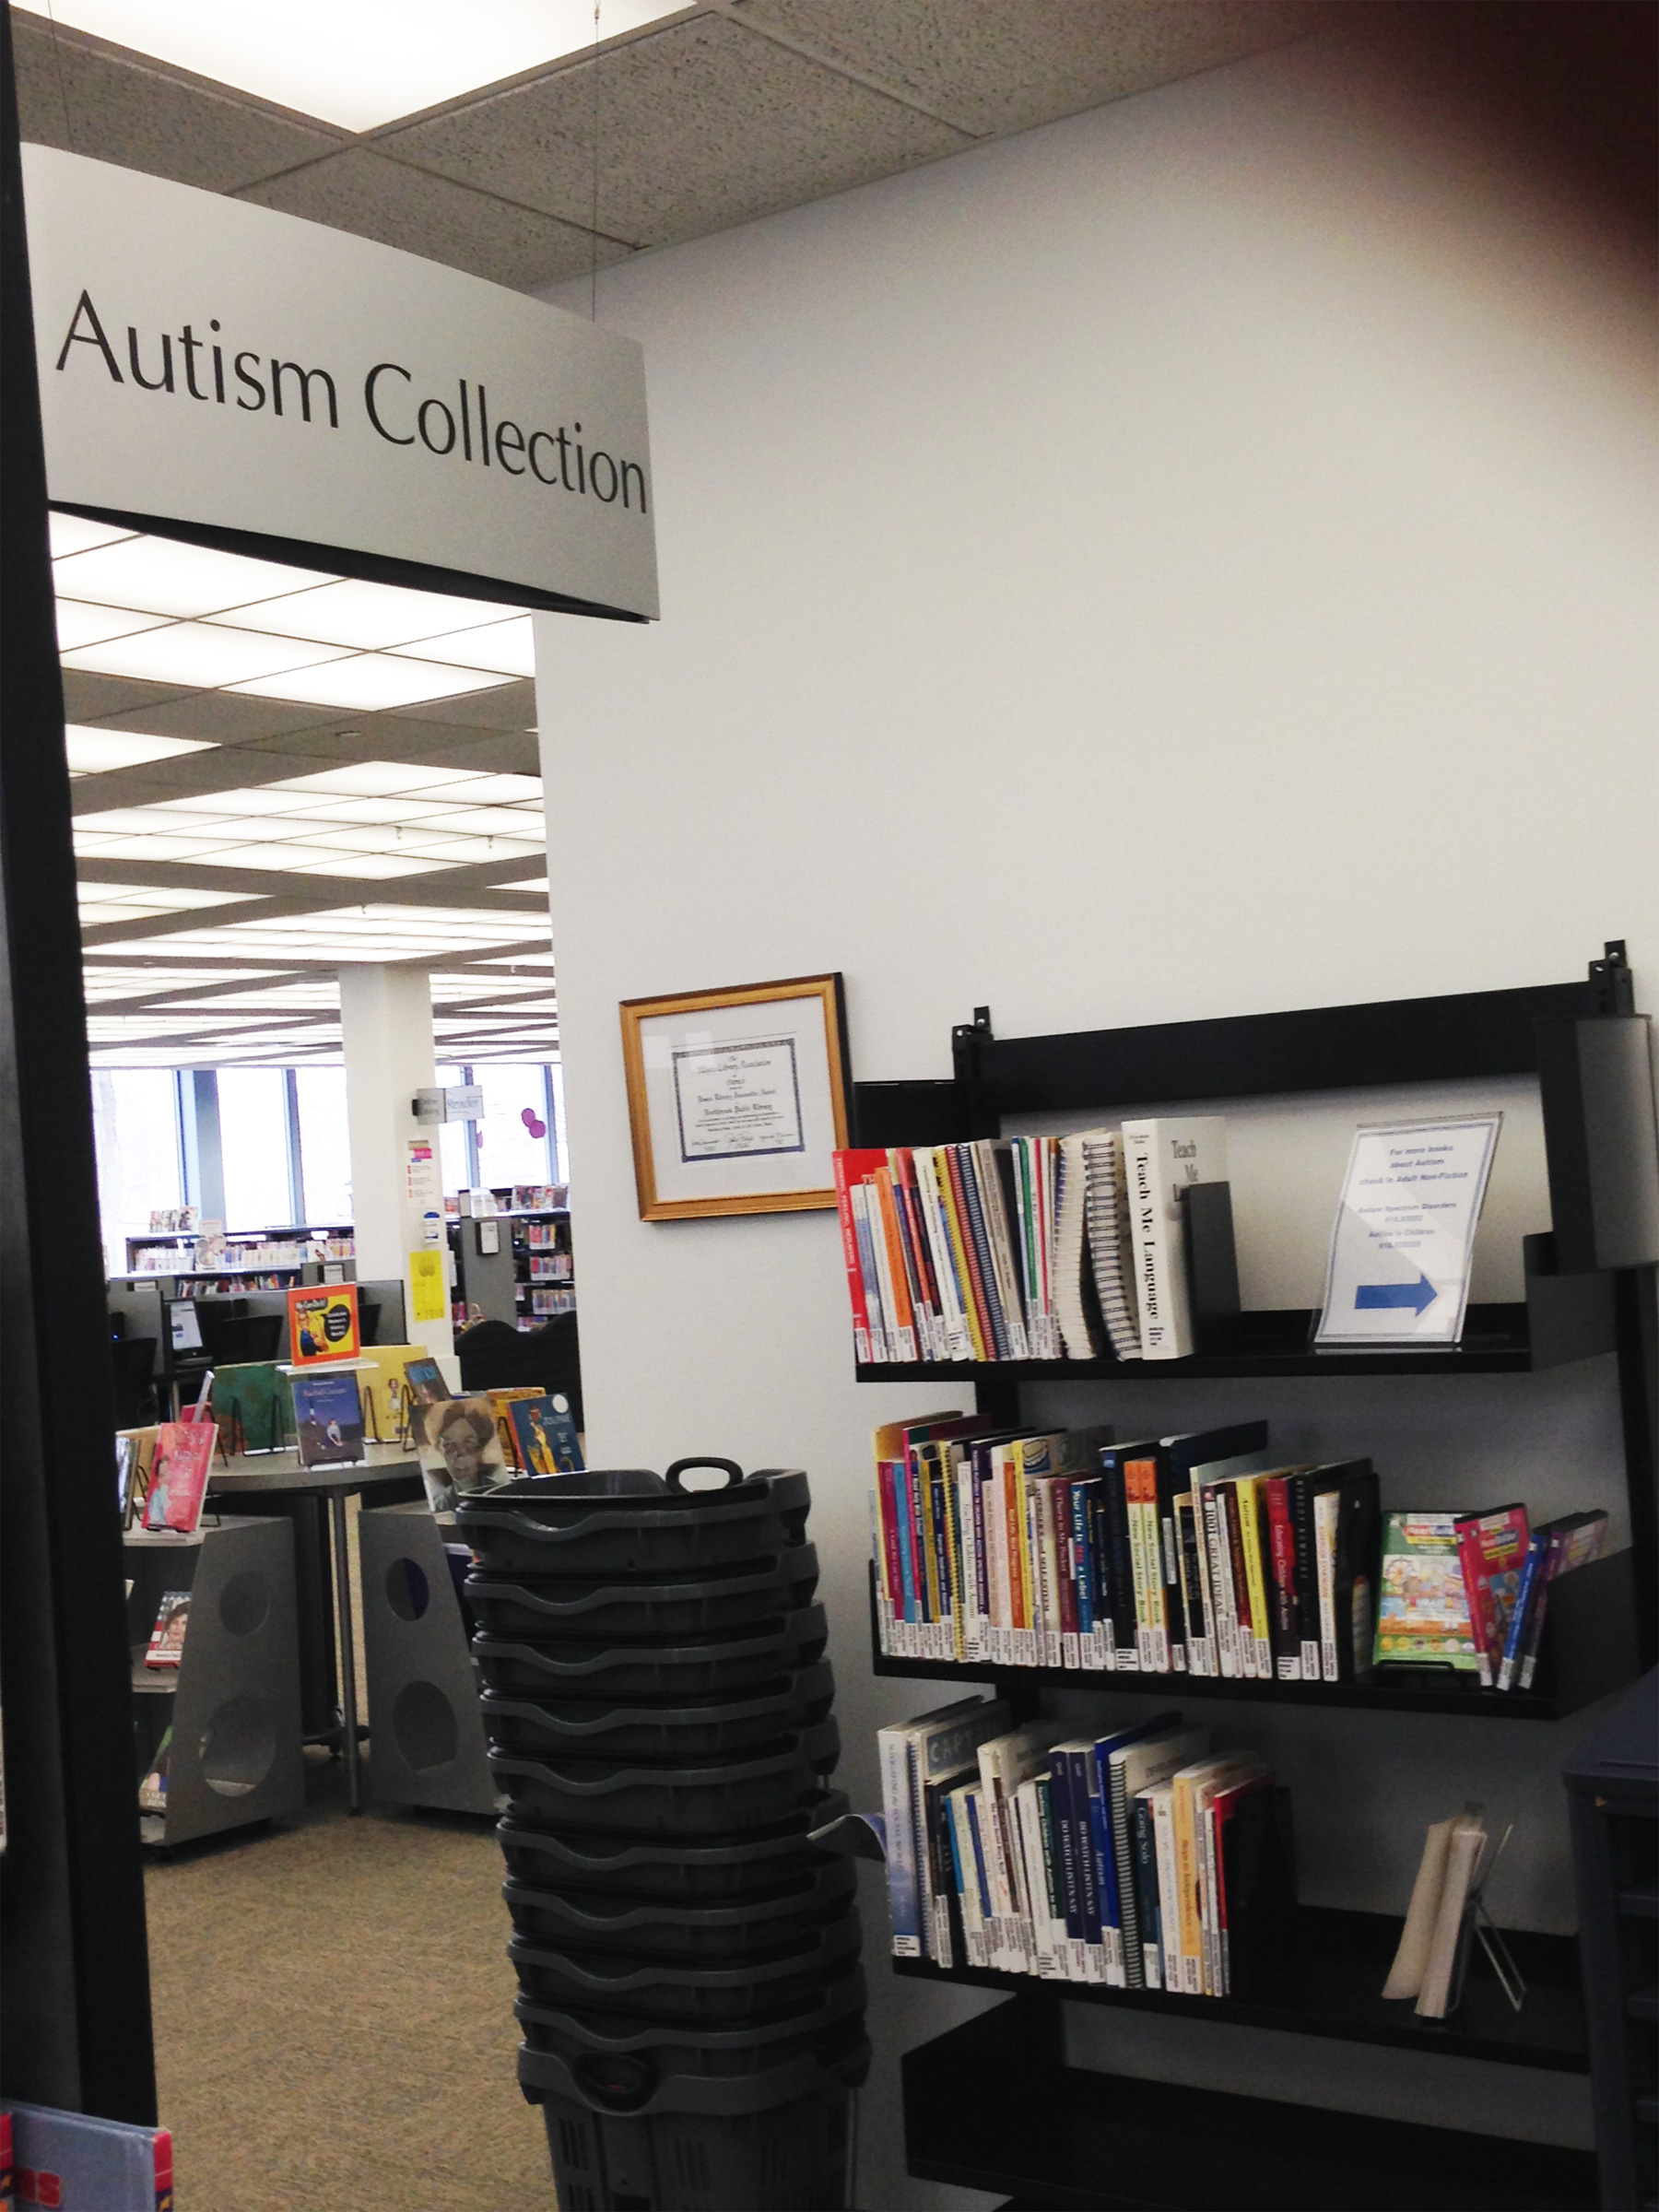 Autism-Collection-Partial-Northbrook-Public-0316